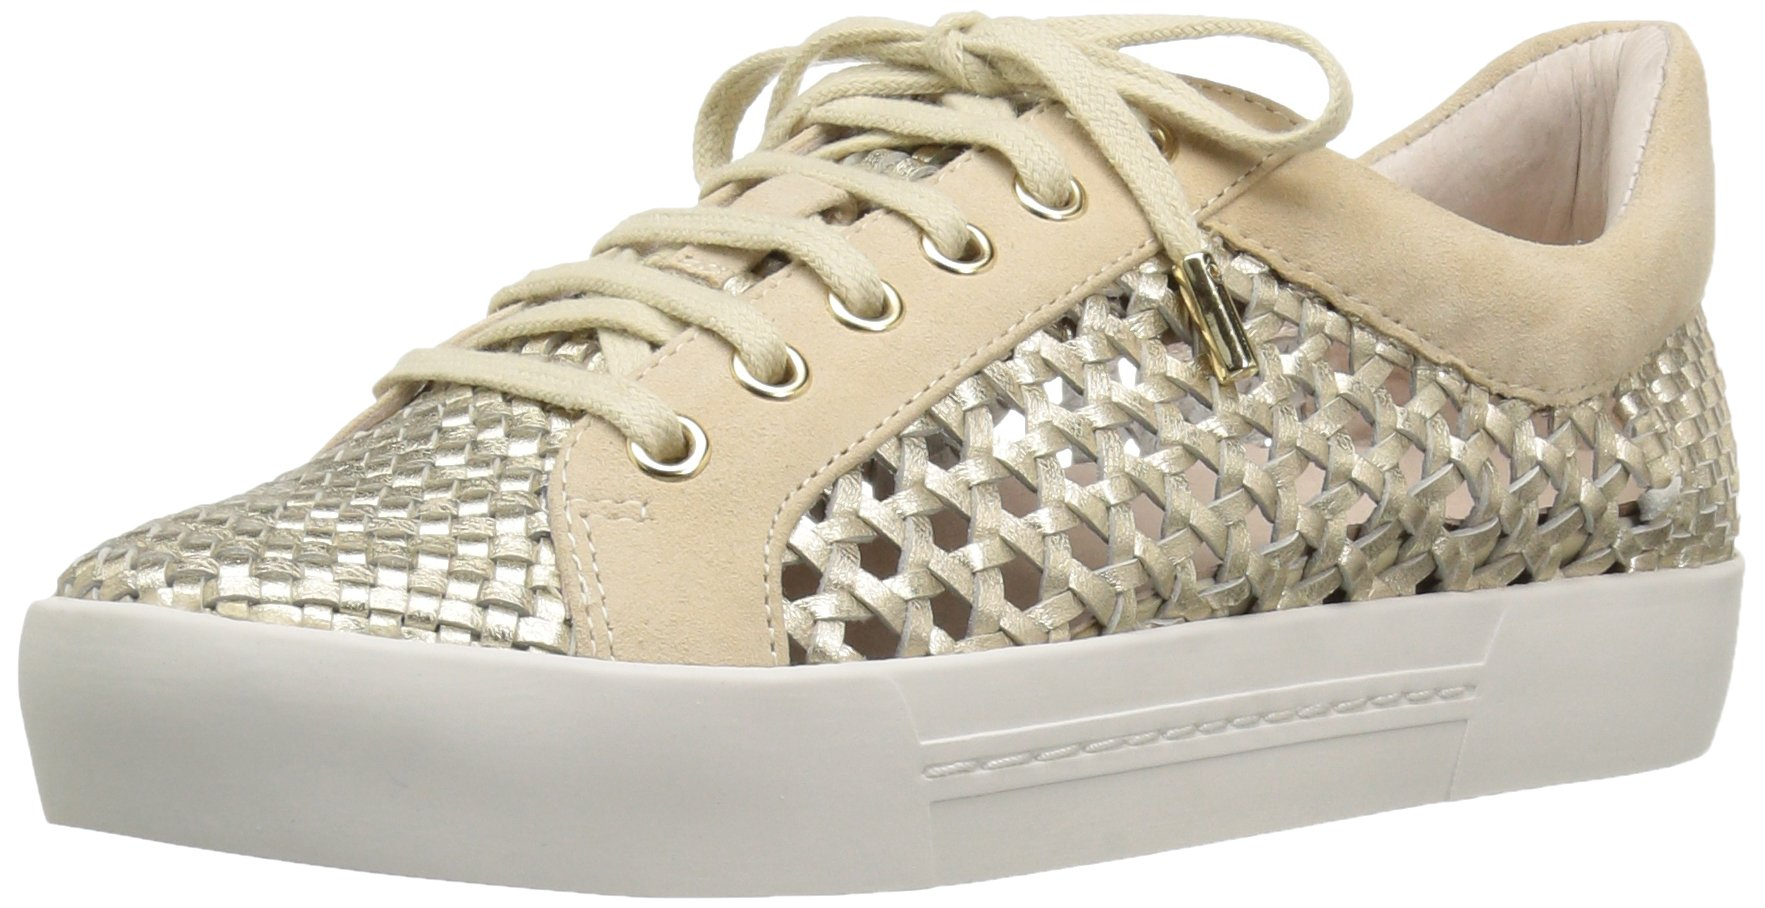 Joie Women's Duha Fashion Sneaker, White/Gold, 36.5 EU/6.5 M US